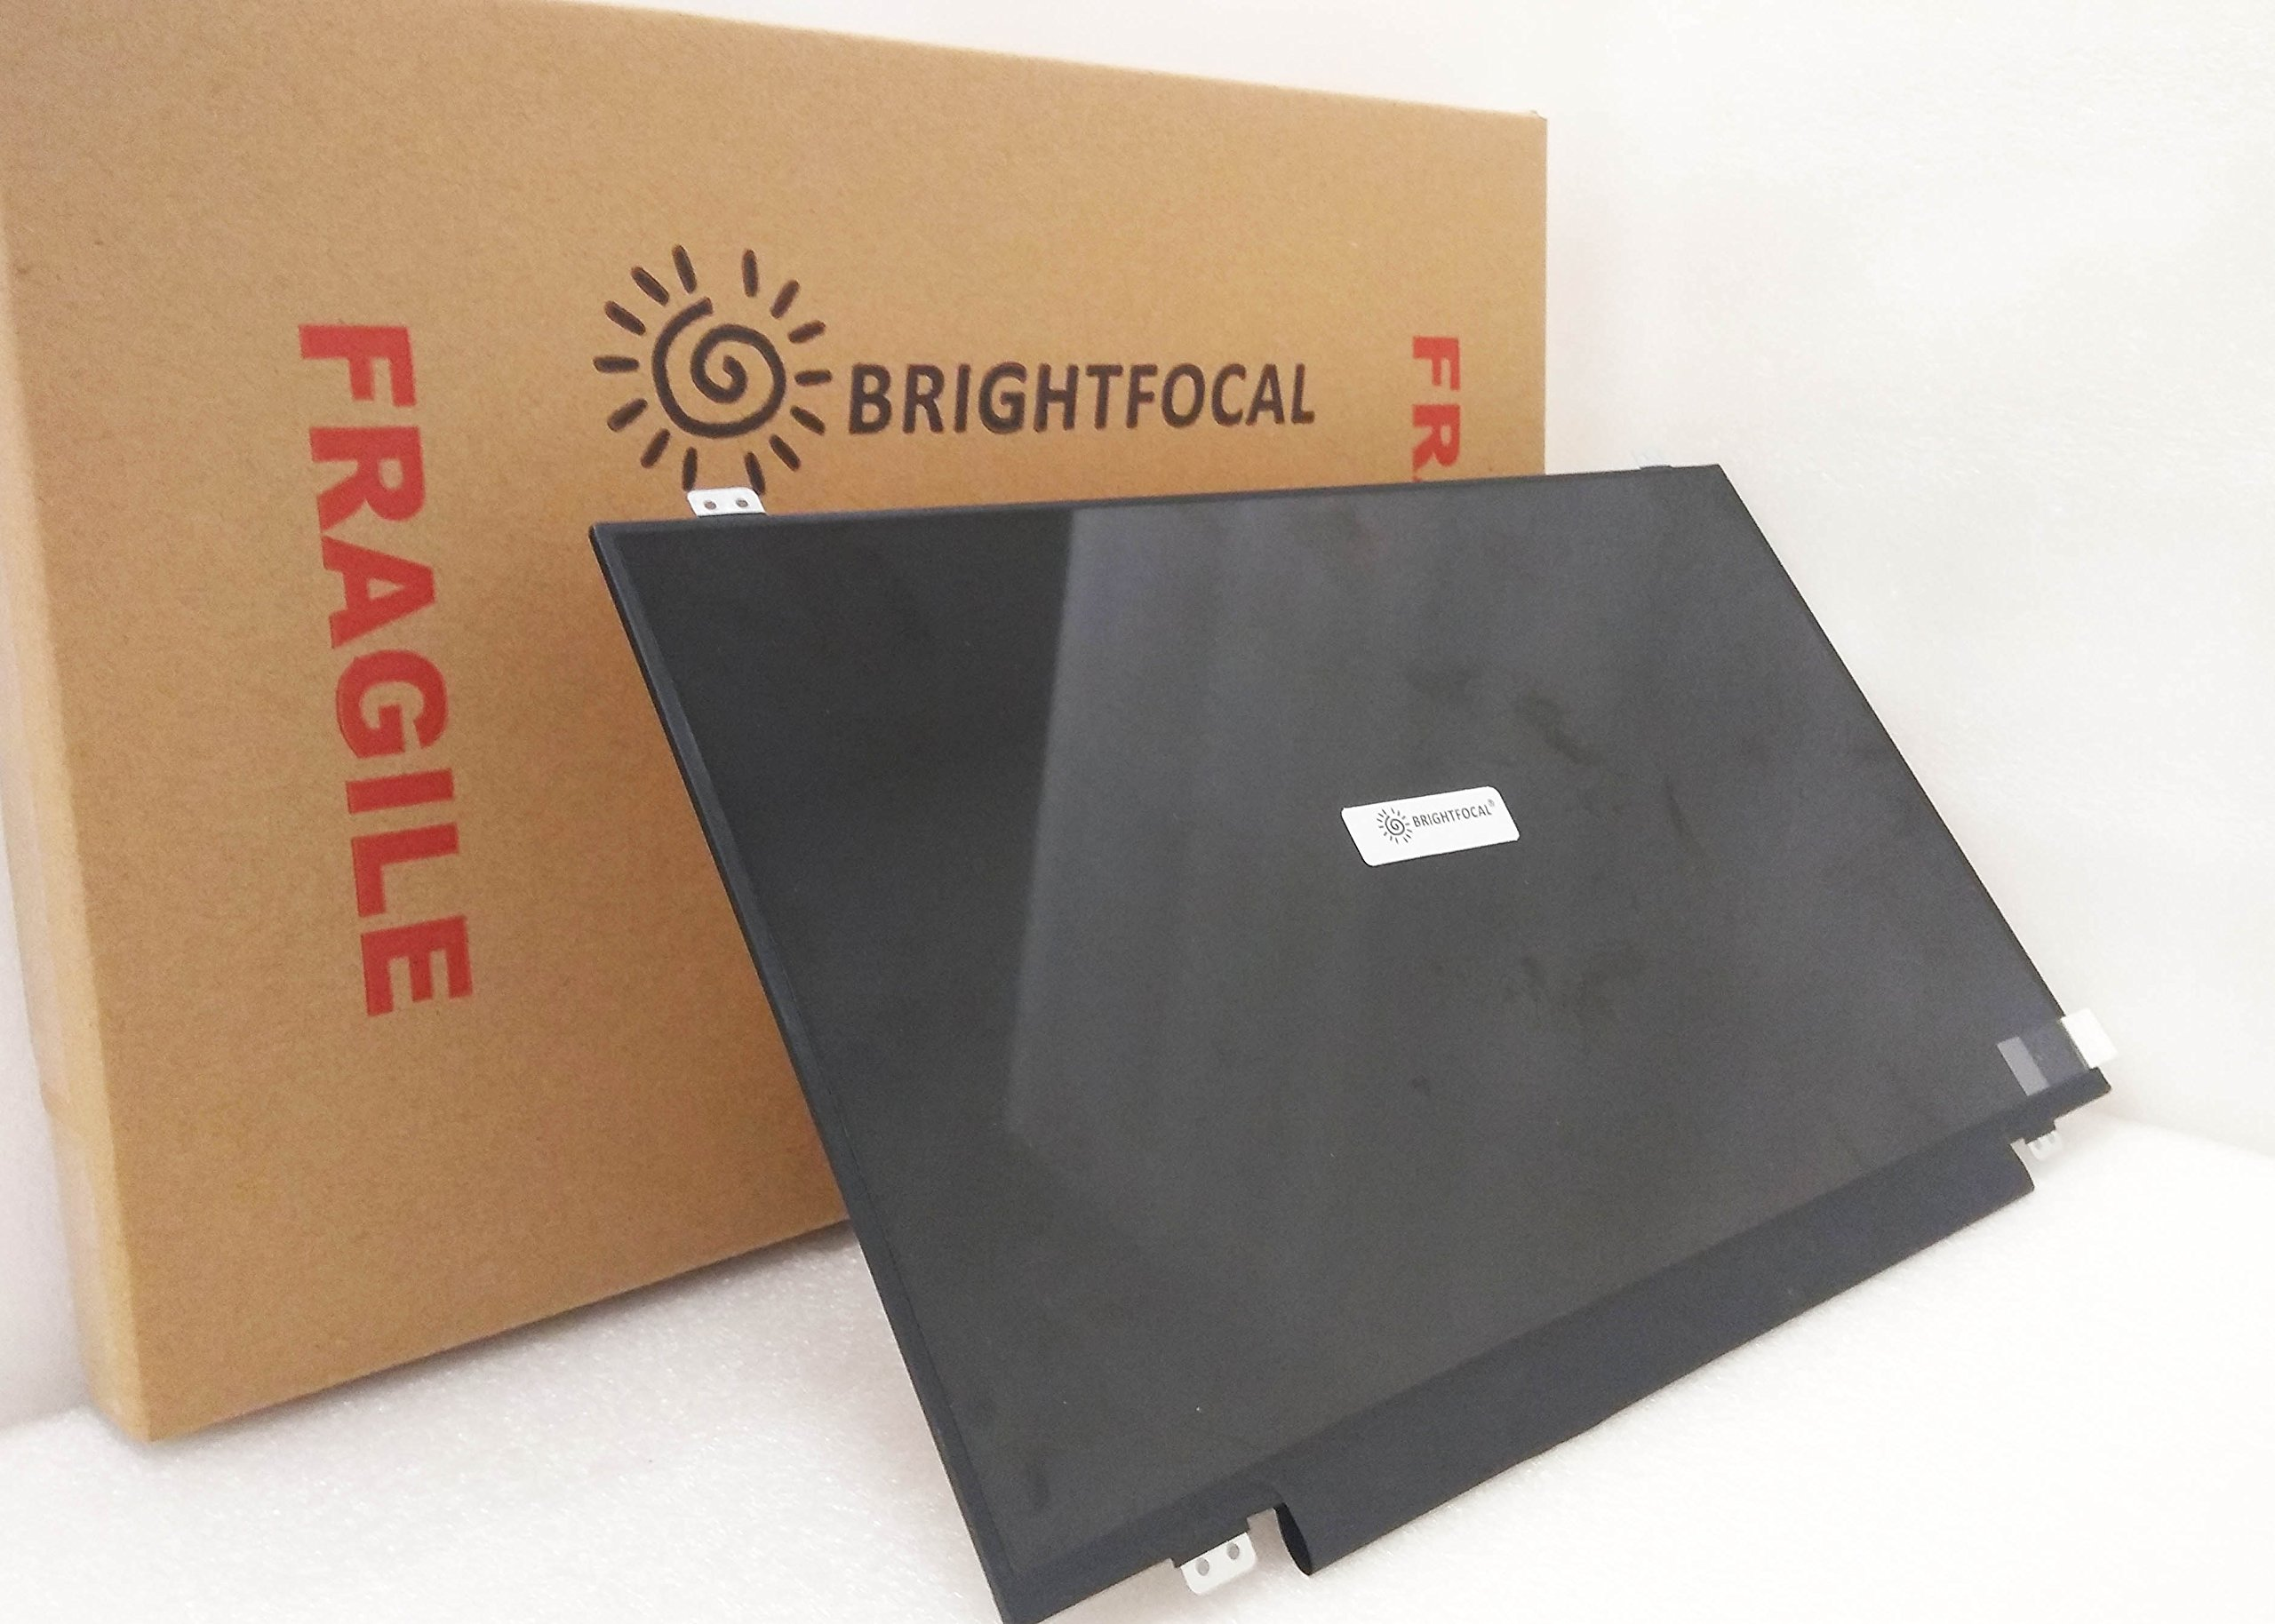 BRIGHTFOCAL New LCD Screen for LTN156AT30 HD 1366x768 Replacement LCD LED Display Panel